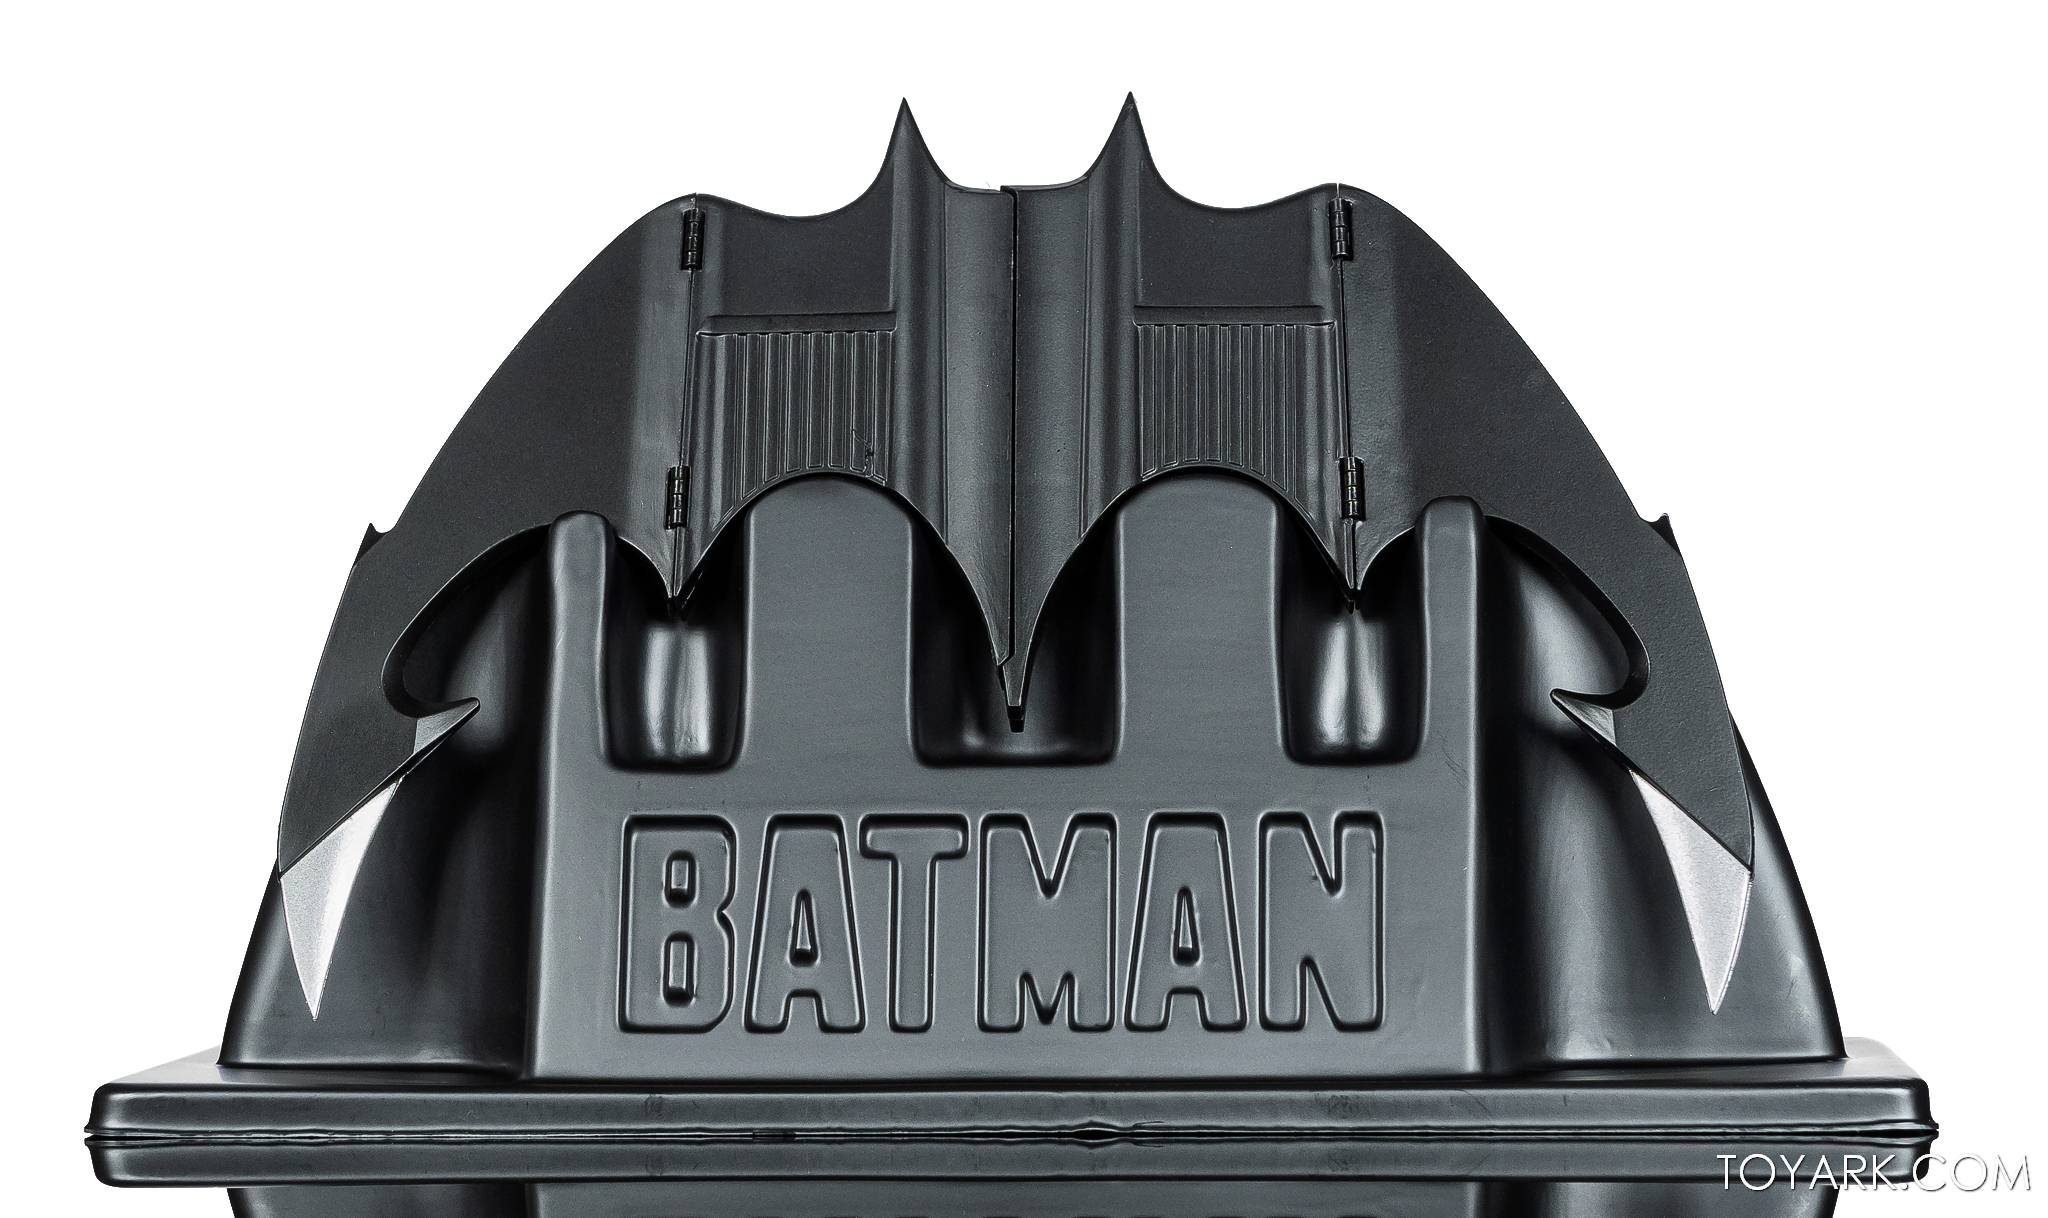 https://news.toyark.com/wp-content/uploads/sites/4/2021/02/NECA-Batarang-004.jpg